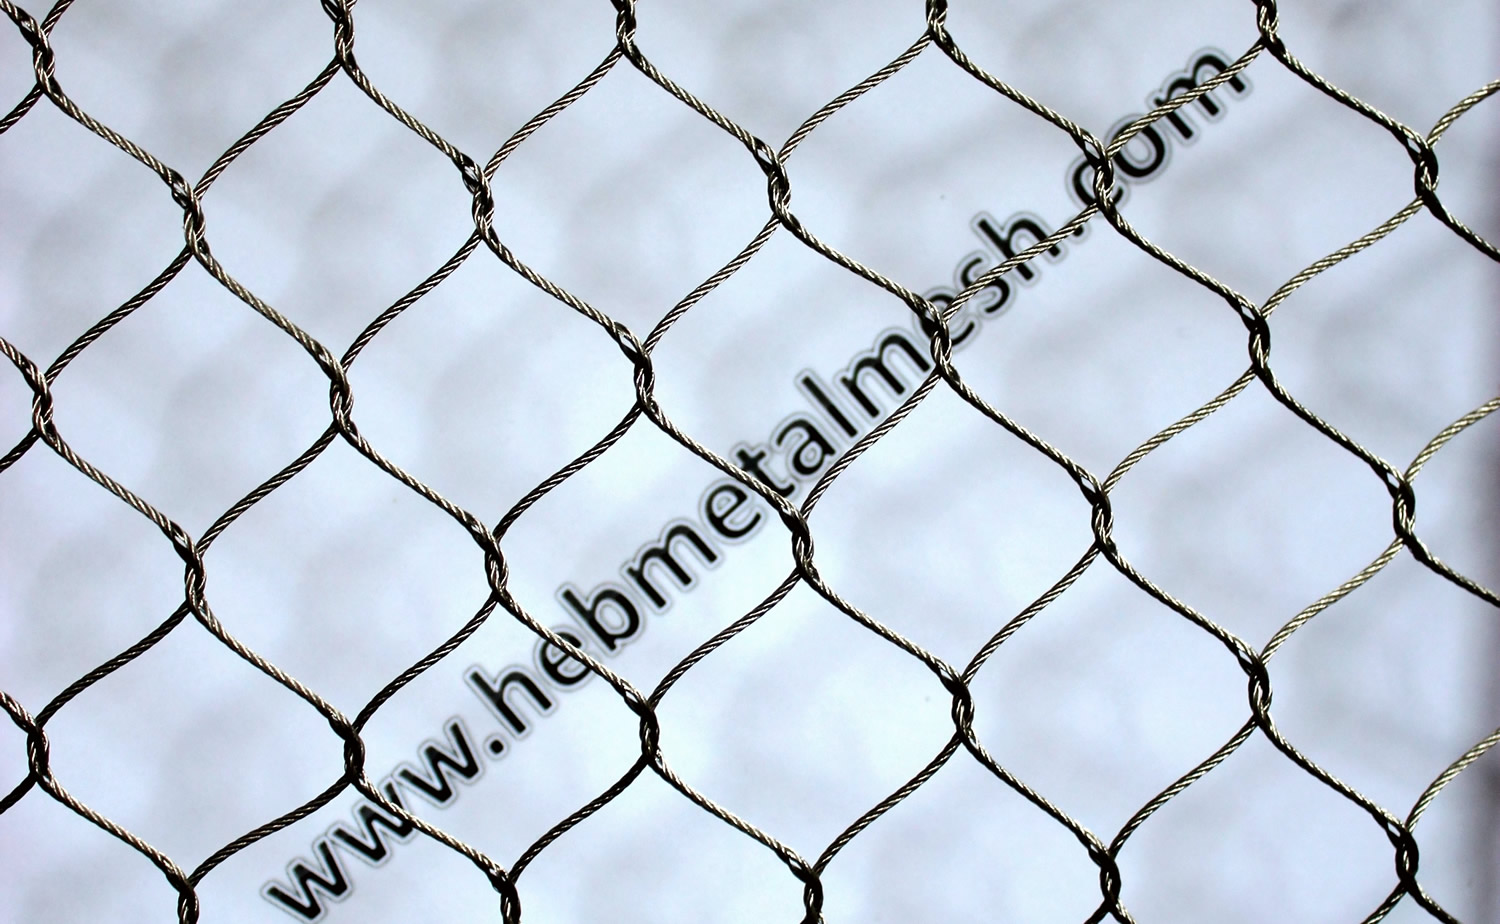 Stainless steel eagle fence mesh, eagle cage mesh, eagle exhibit ...